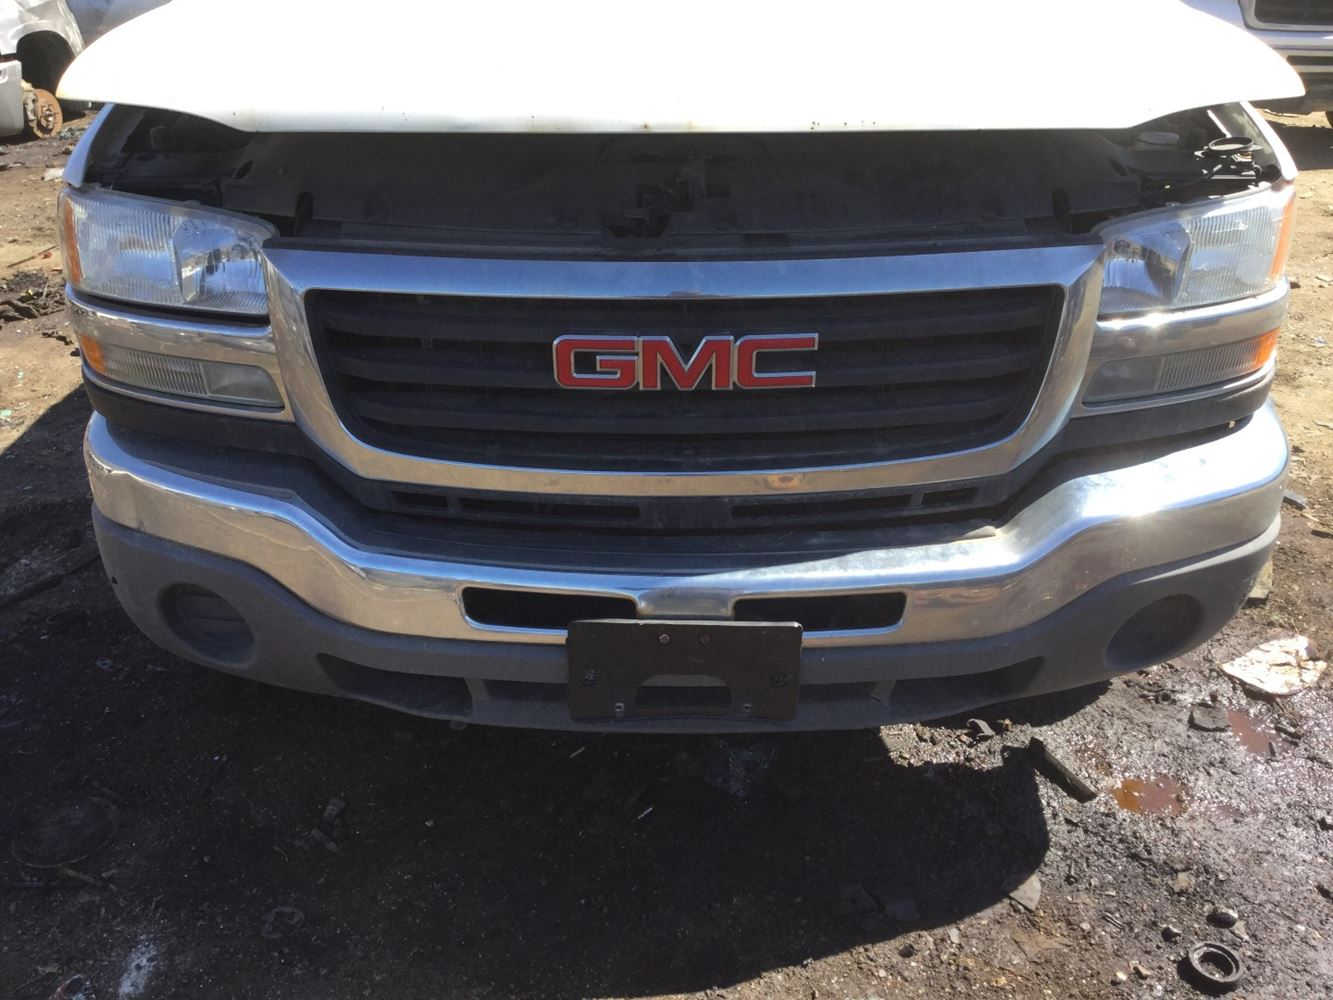 Gmc Truck Parts >> 2005 Gmc Sierra Stock 3261 Bumpers Tpi